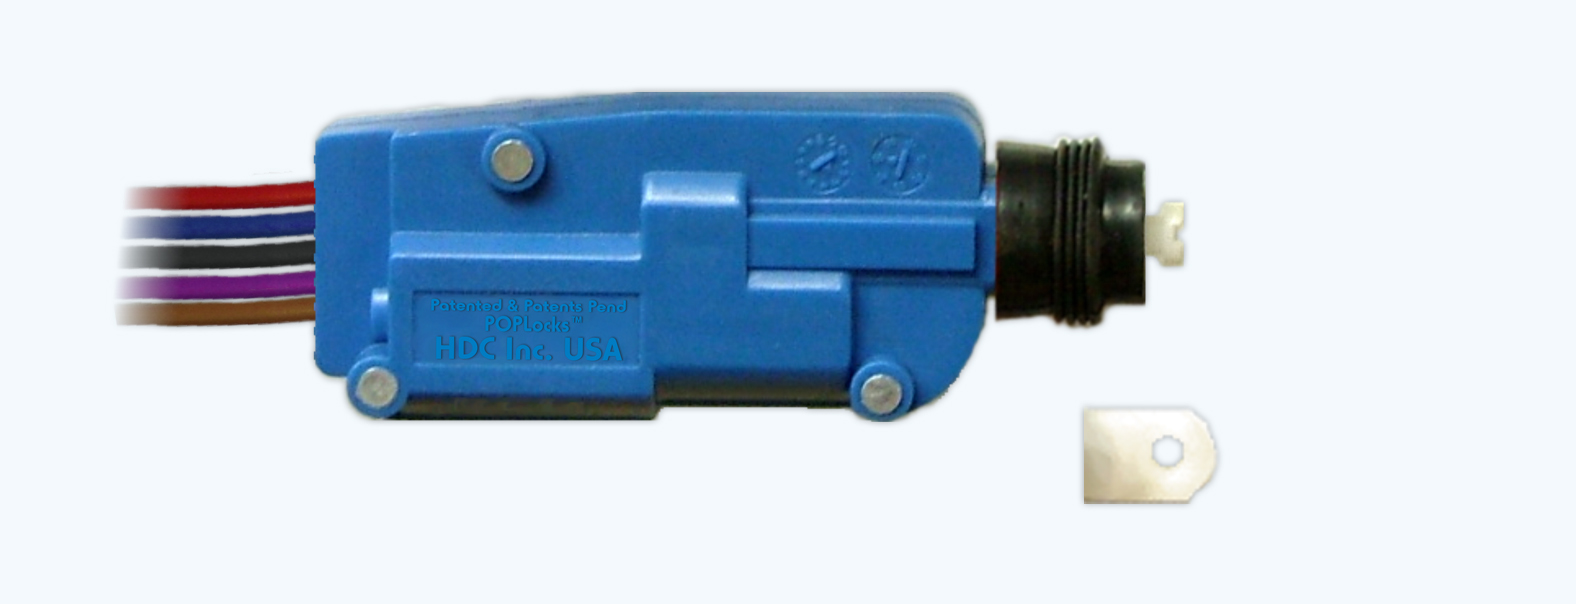 B5 - Blue 5-Wire Actuator Image